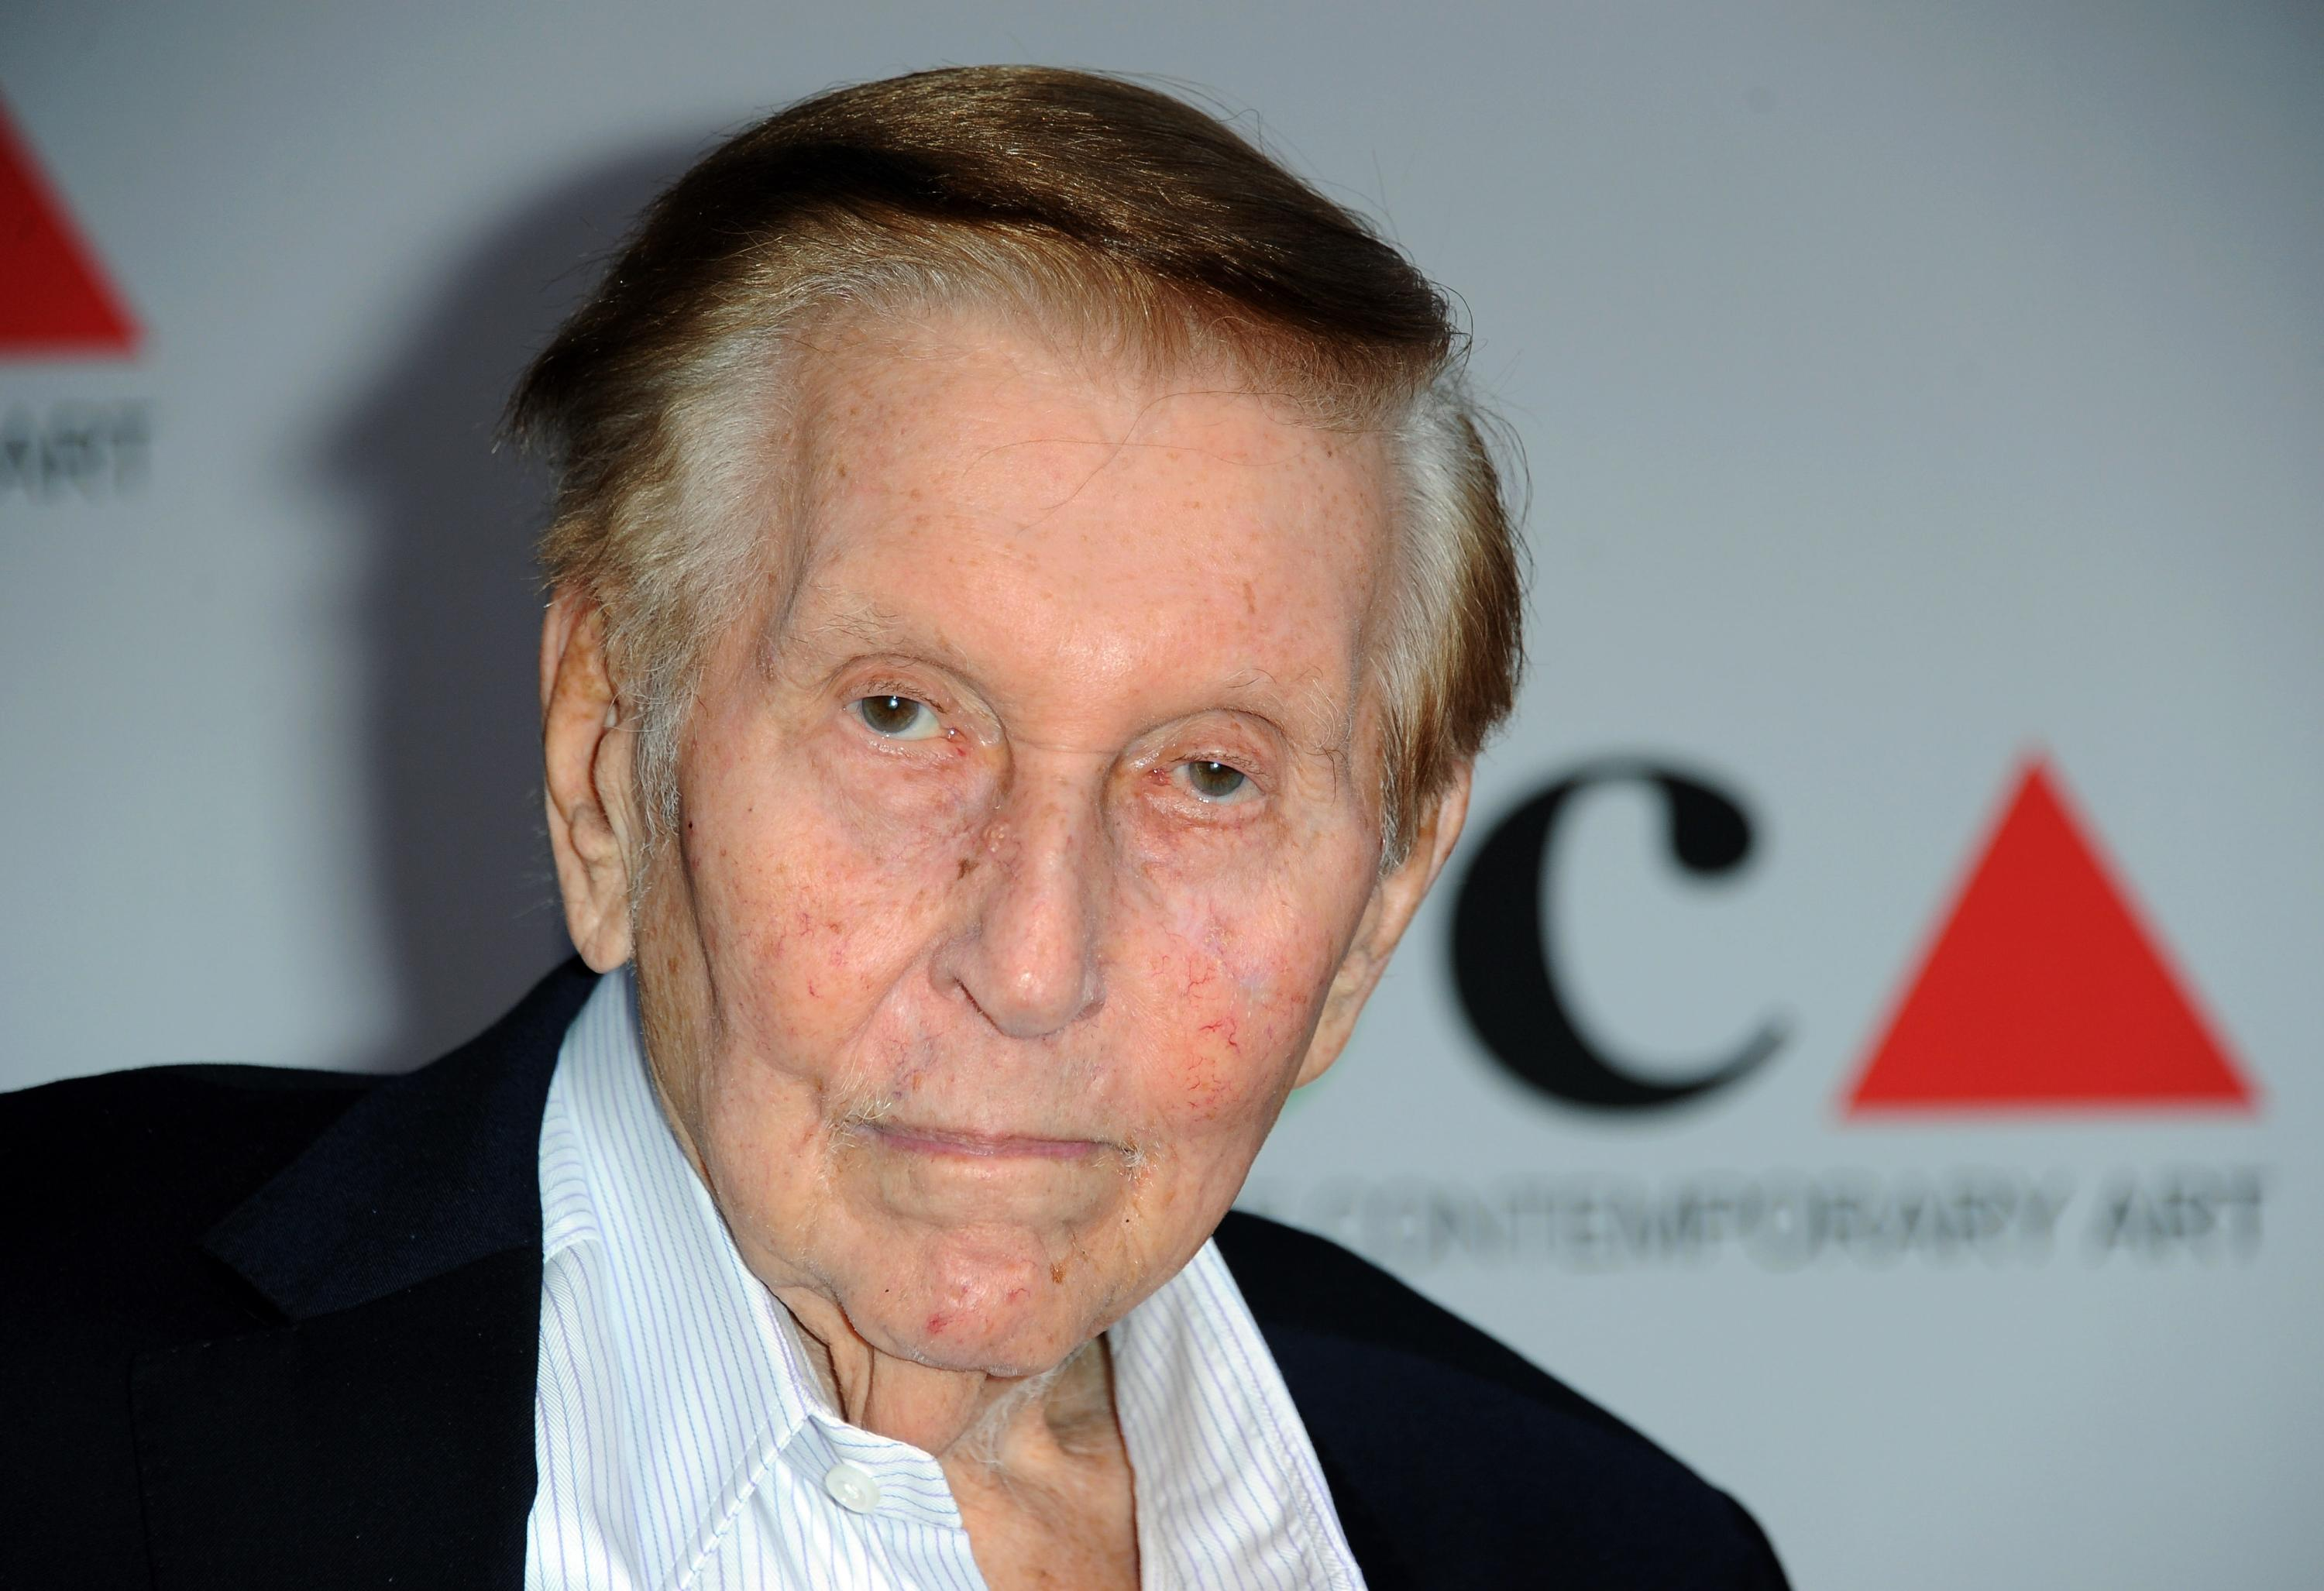 The Latest: Lawyer says woman trying to protect Redstone